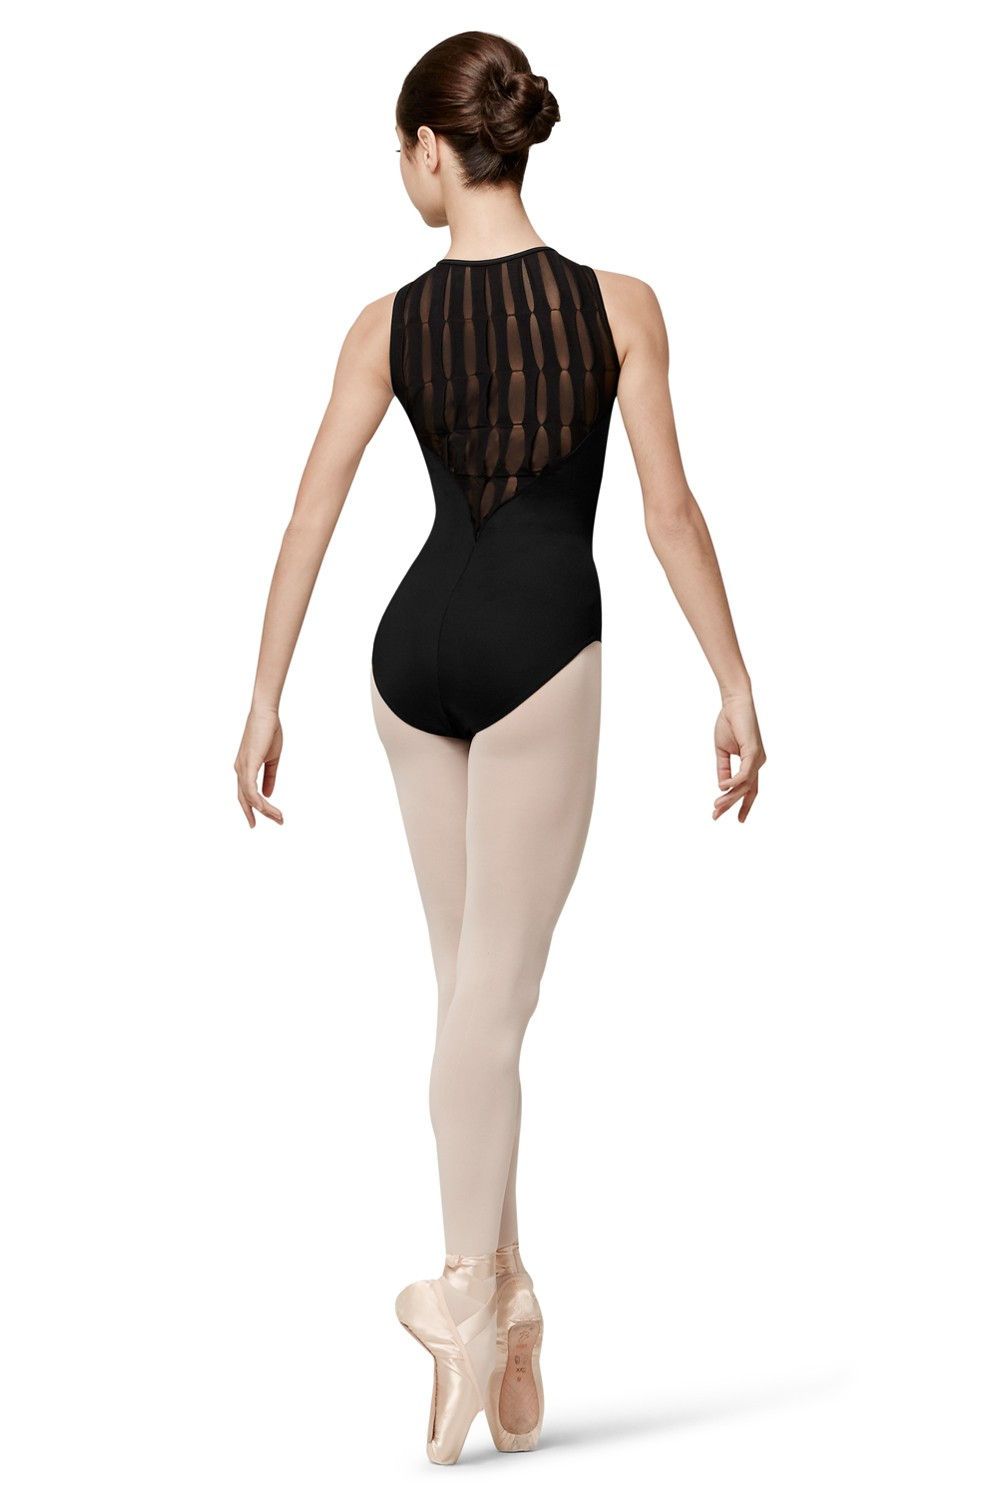 Laguna Women's Dance Leotards